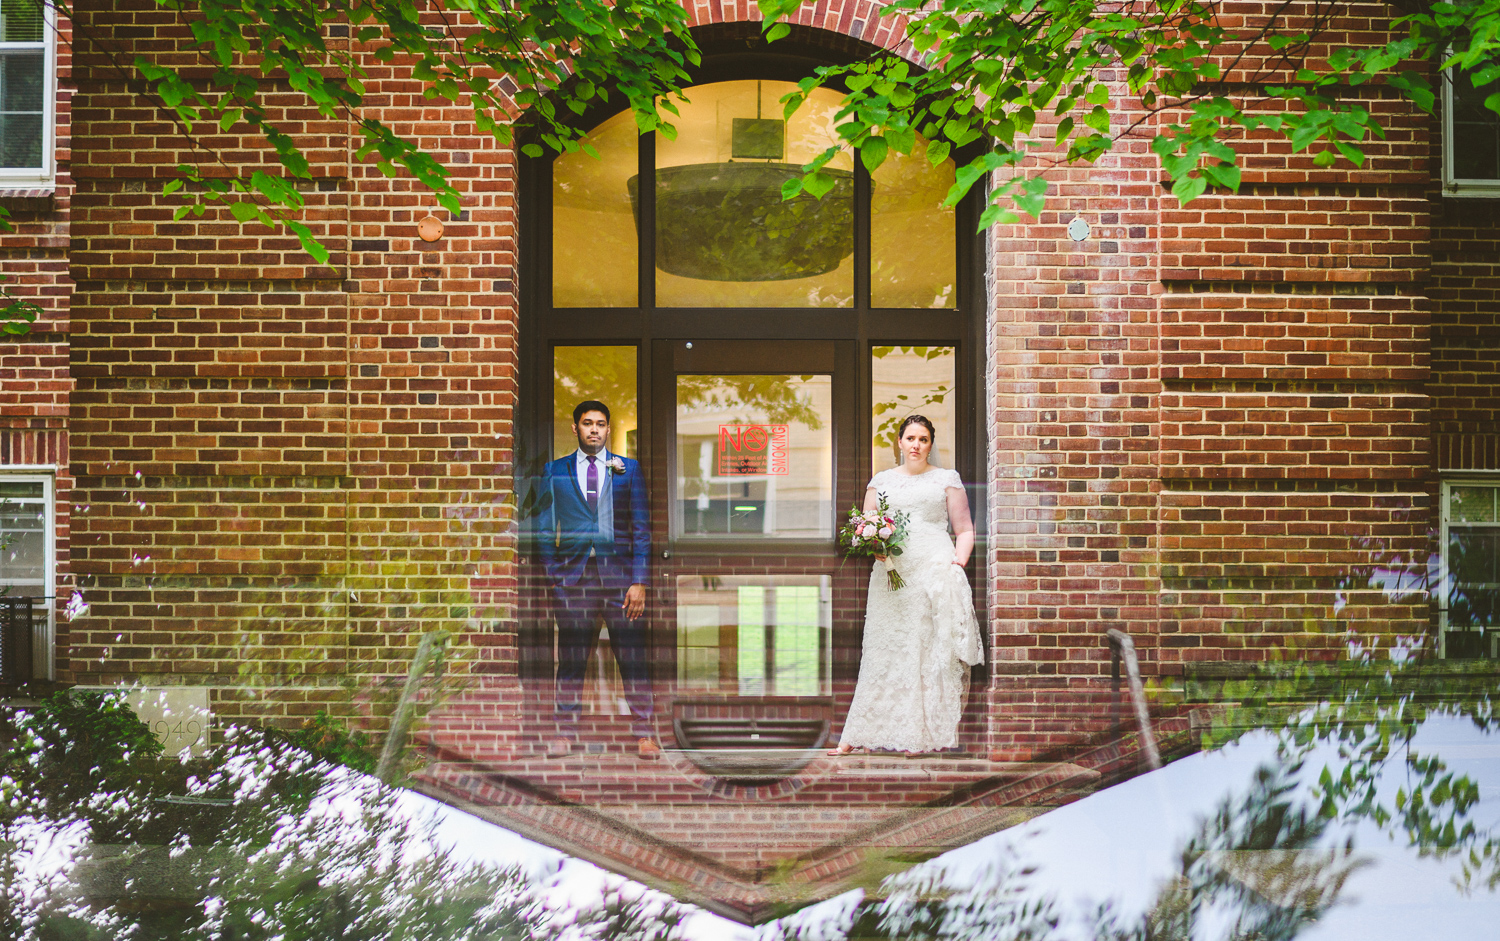 010 - photo of bride and groom in reflection of building.jpg